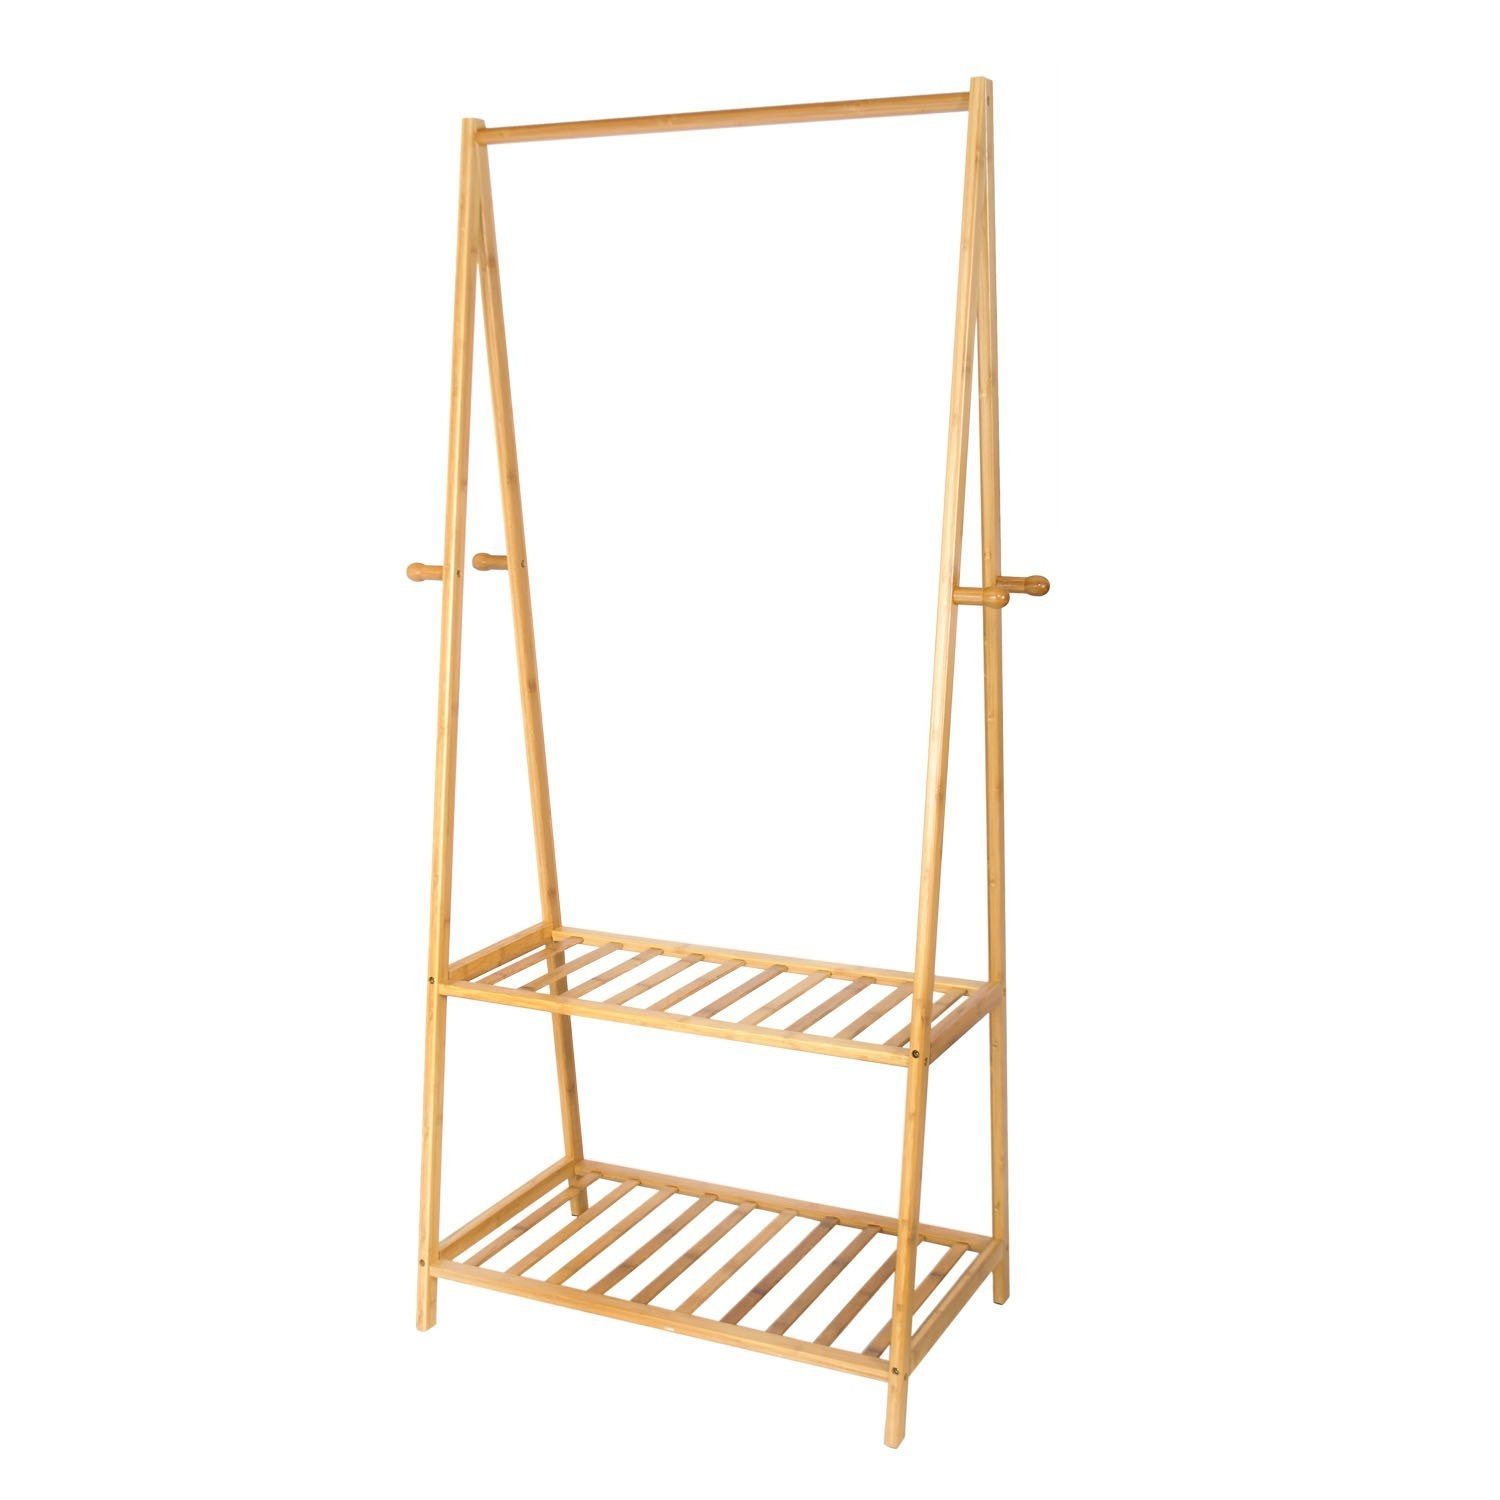 Coat stand hapilife multifunctional wooden garment rack stand with 4 clothes hooks and 2 tier shoe clothes storage rack shelves 158 x 70 x 44cm by hapilife